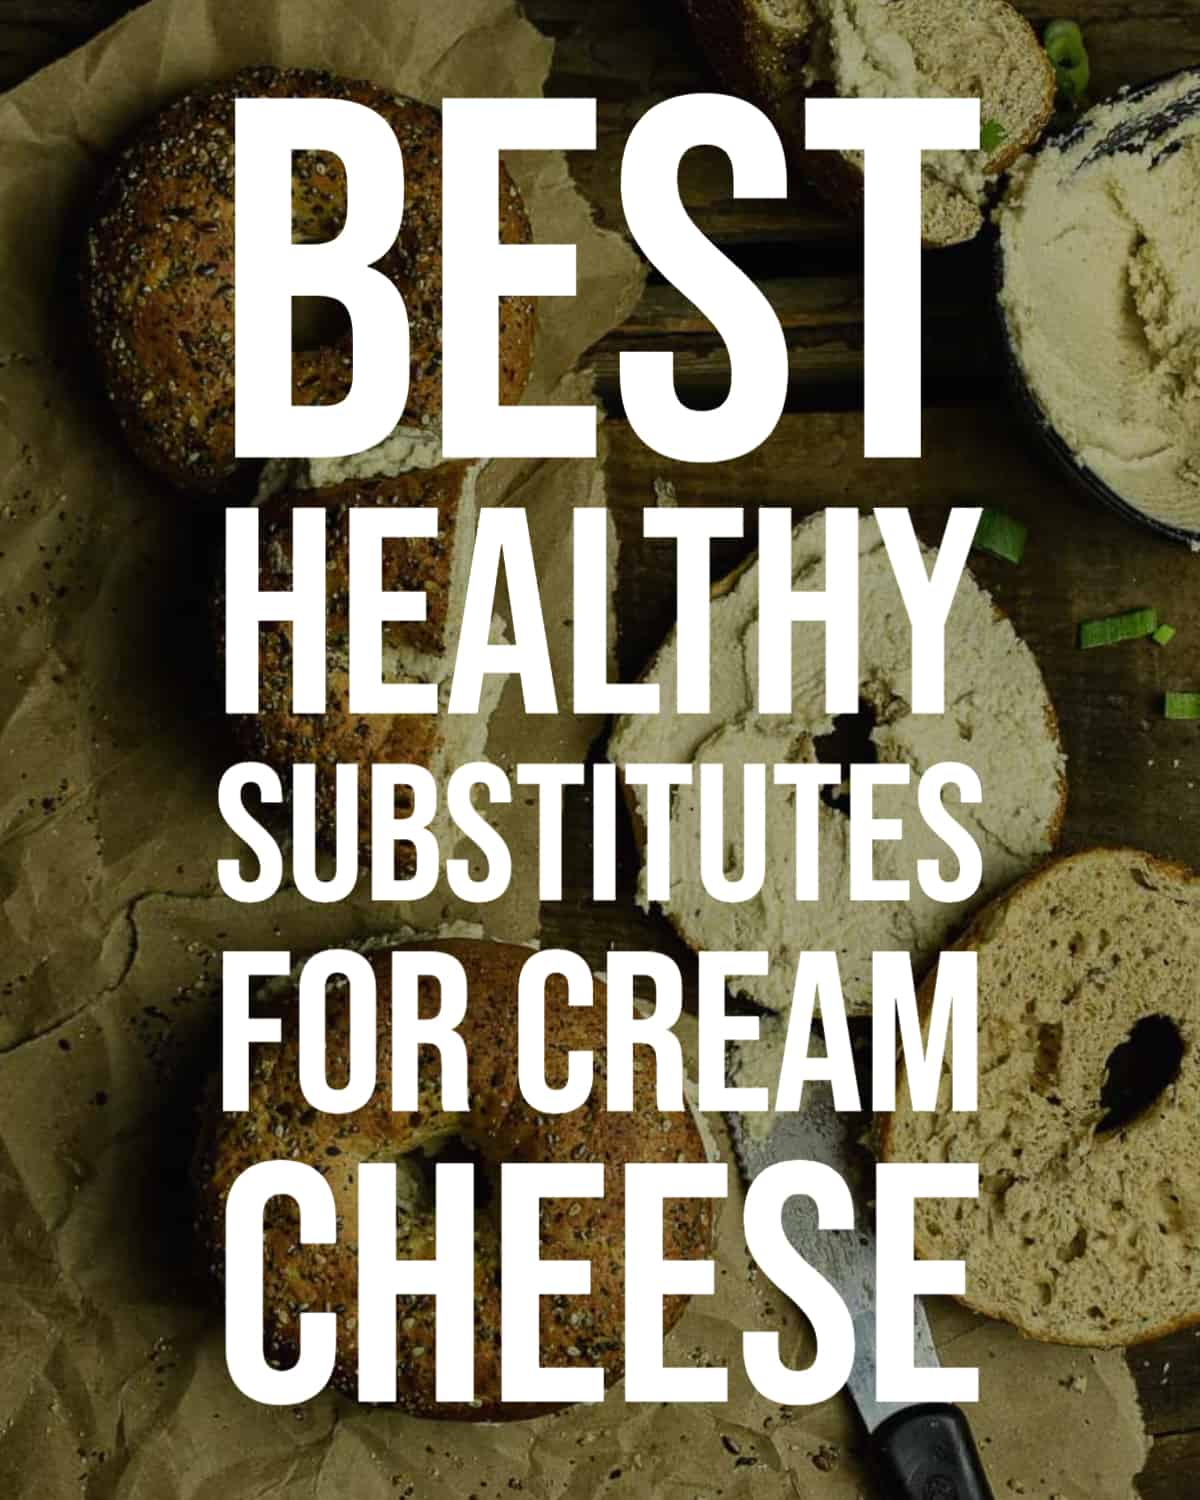 best healthy substitutes for cream cheese.